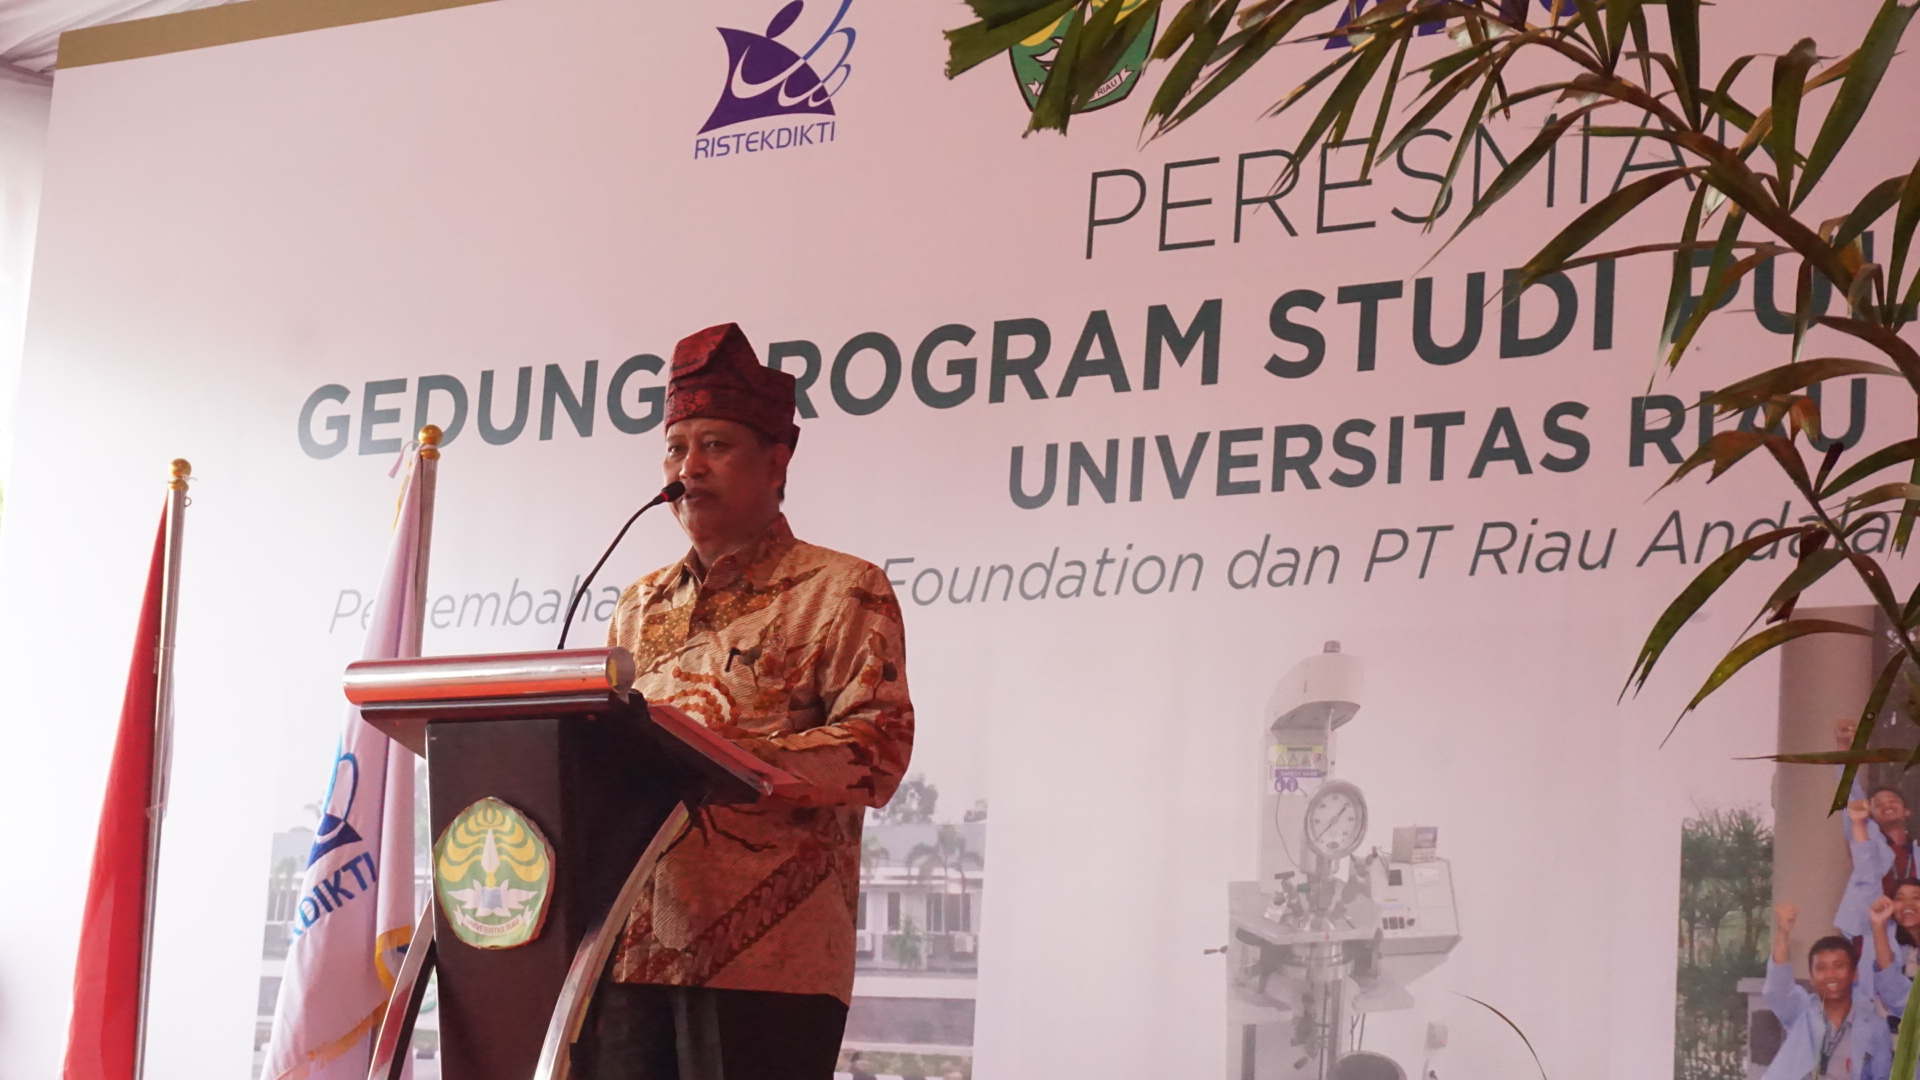 Welcome speech of Minister of Research, Technology and Higher Education (Menristekdikti) of Indonesia, Mohamad Nasir